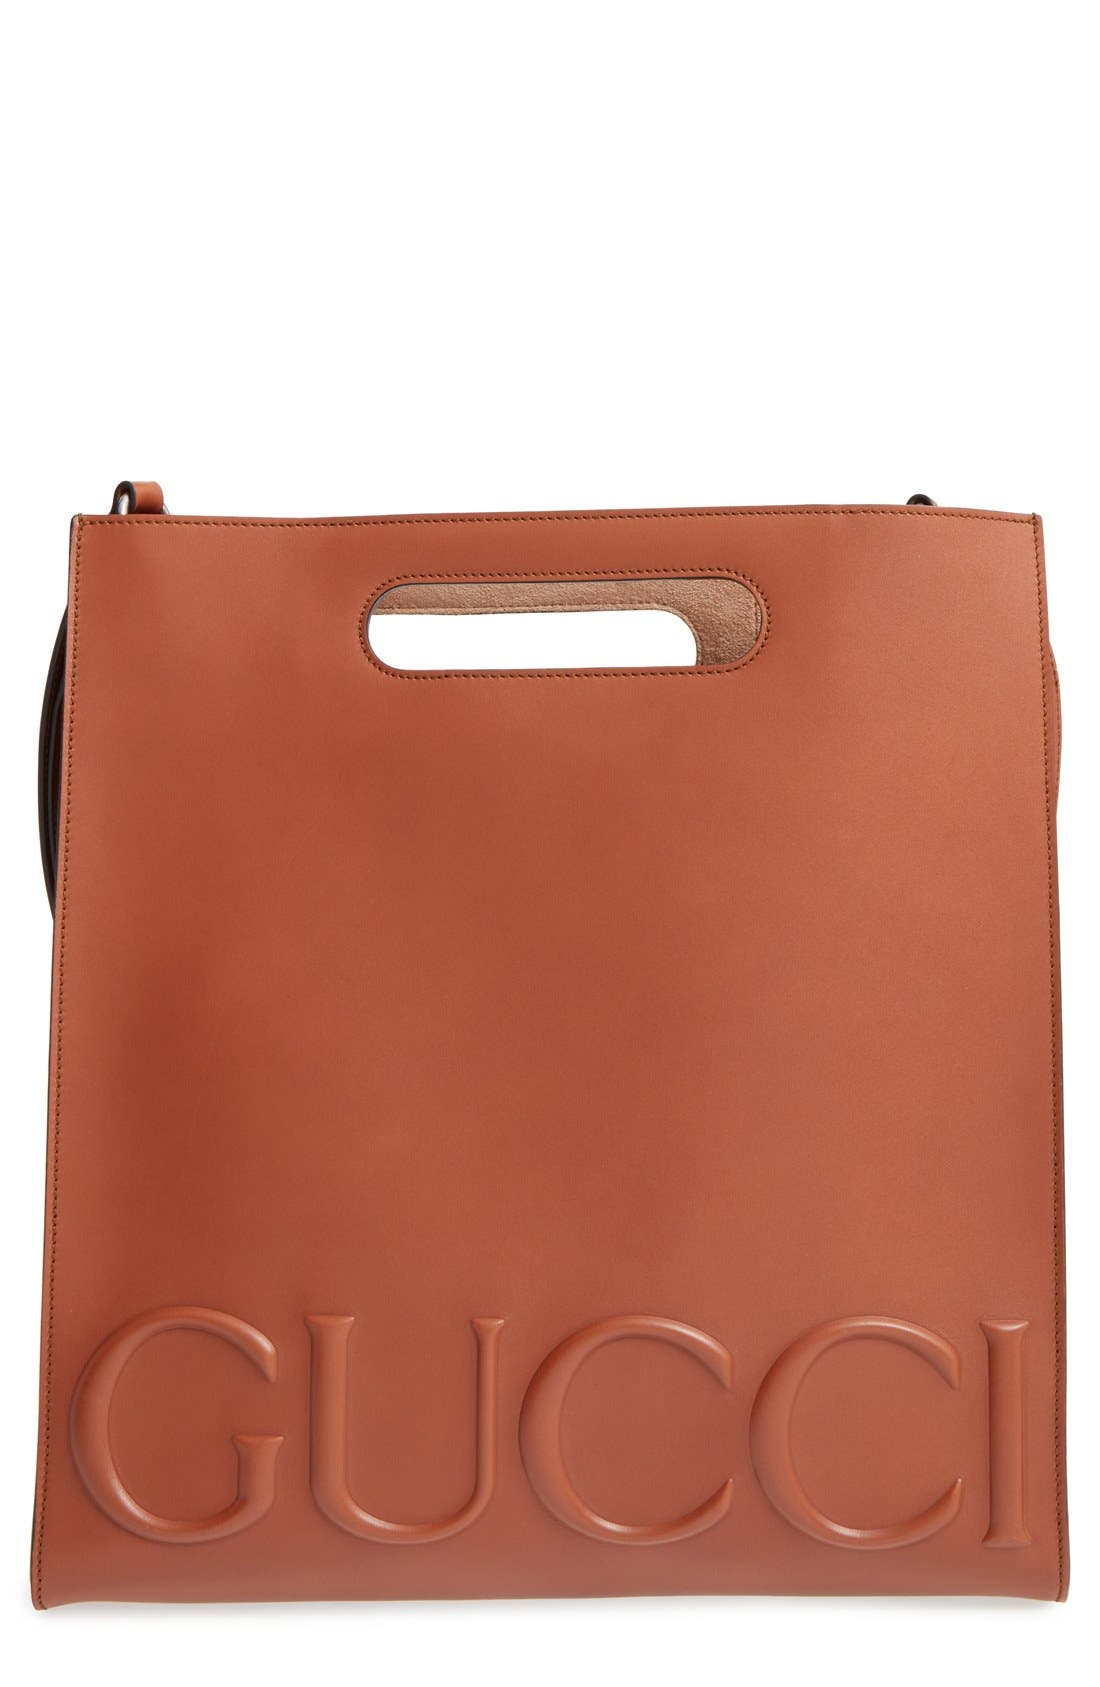 Main Image - Gucci Embossed Calf Leather Tote